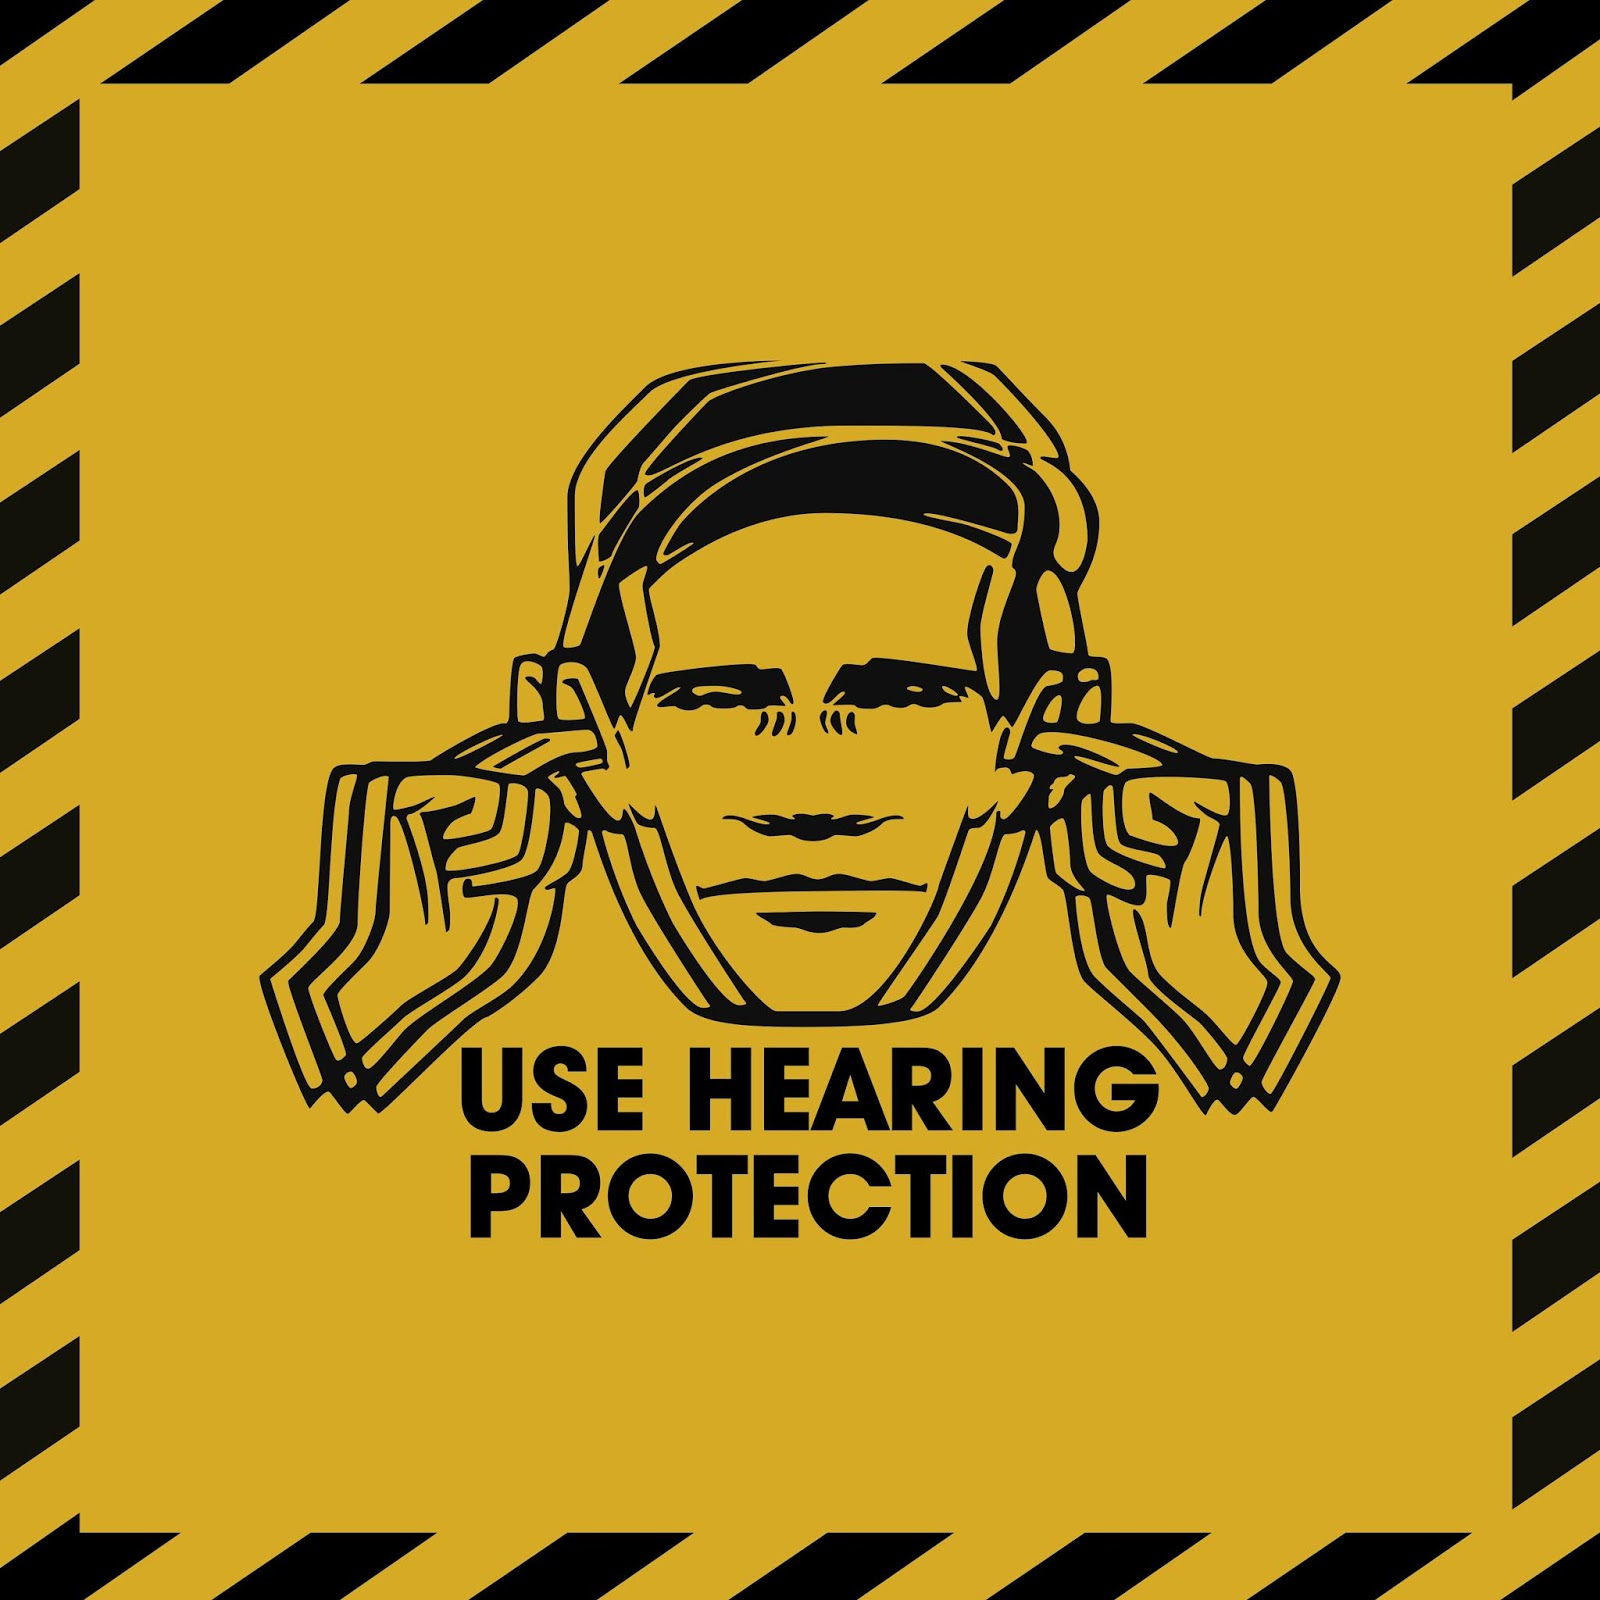 Use Hearing Protection Fac 1-50 / 40